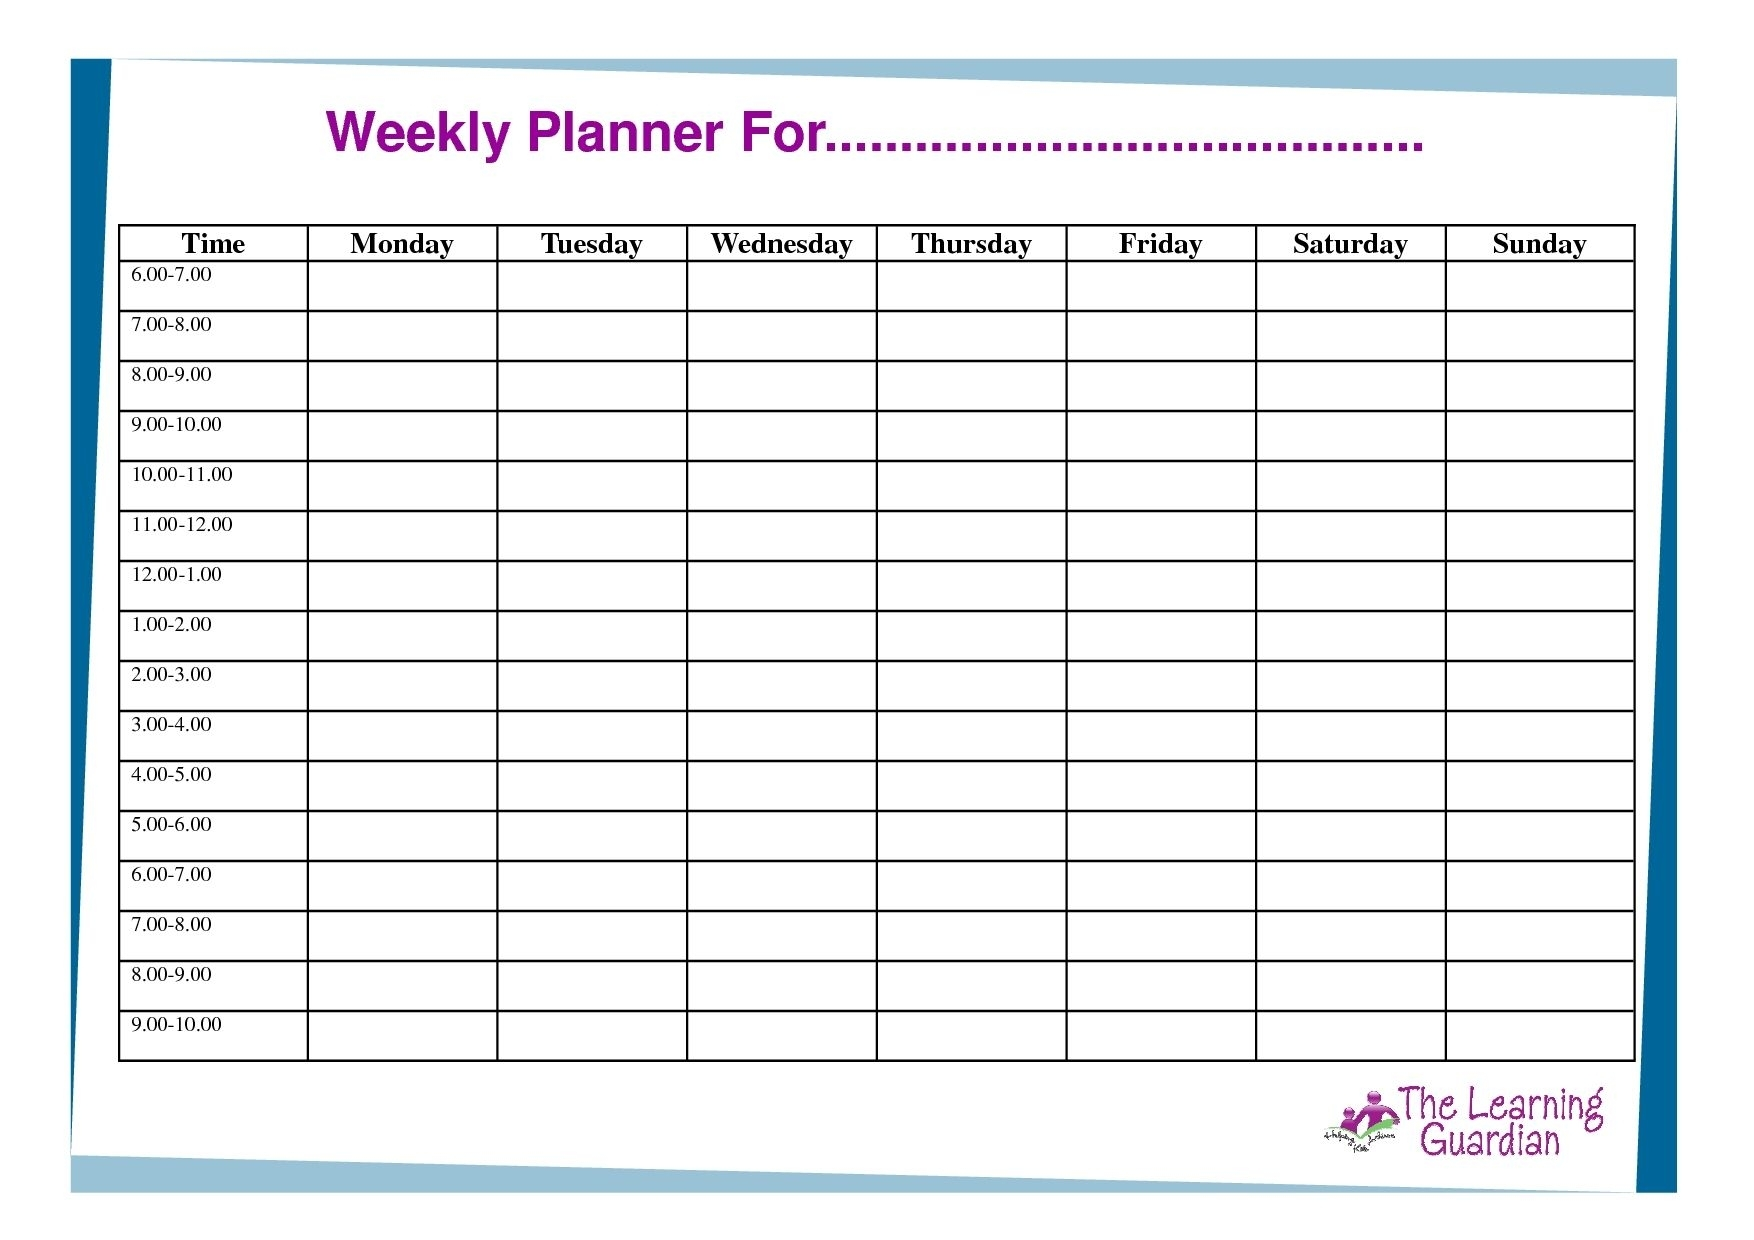 Free Printable Weekly Calendar Templates Planner For Time Incredible pertaining to Day 7 Weekly Planner Template